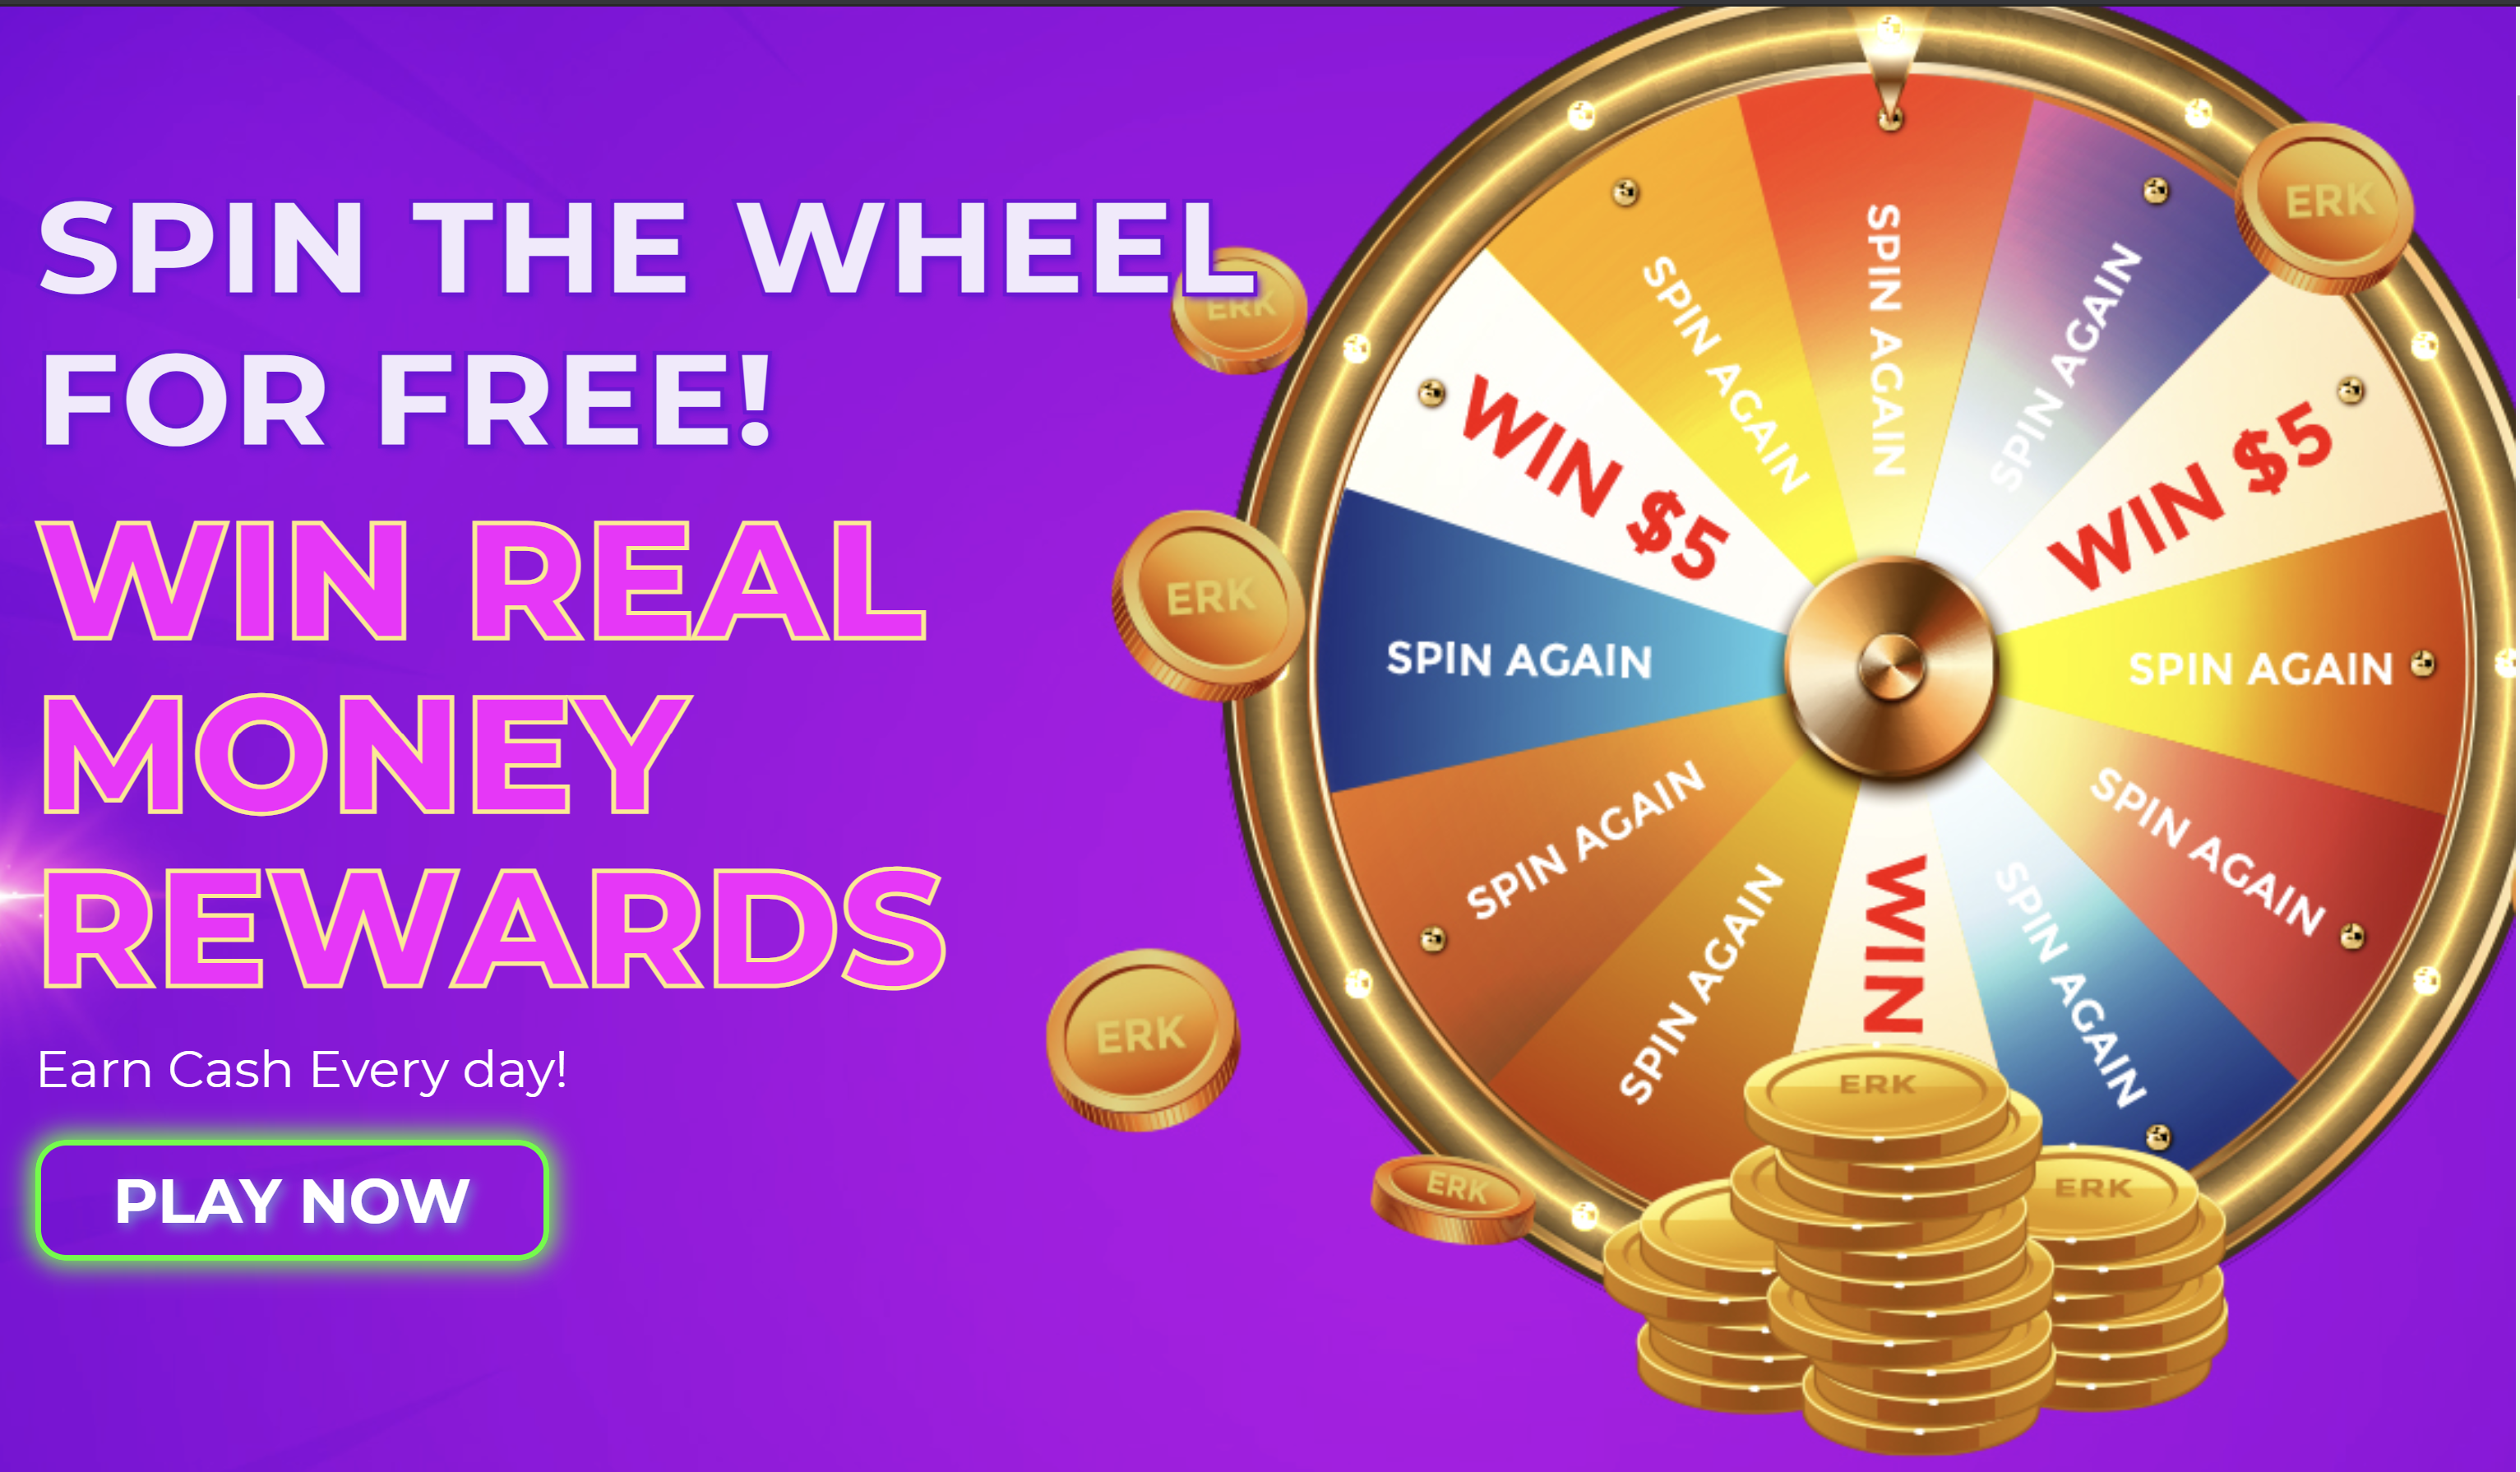 PoolBet – Free Cash For Everyone!